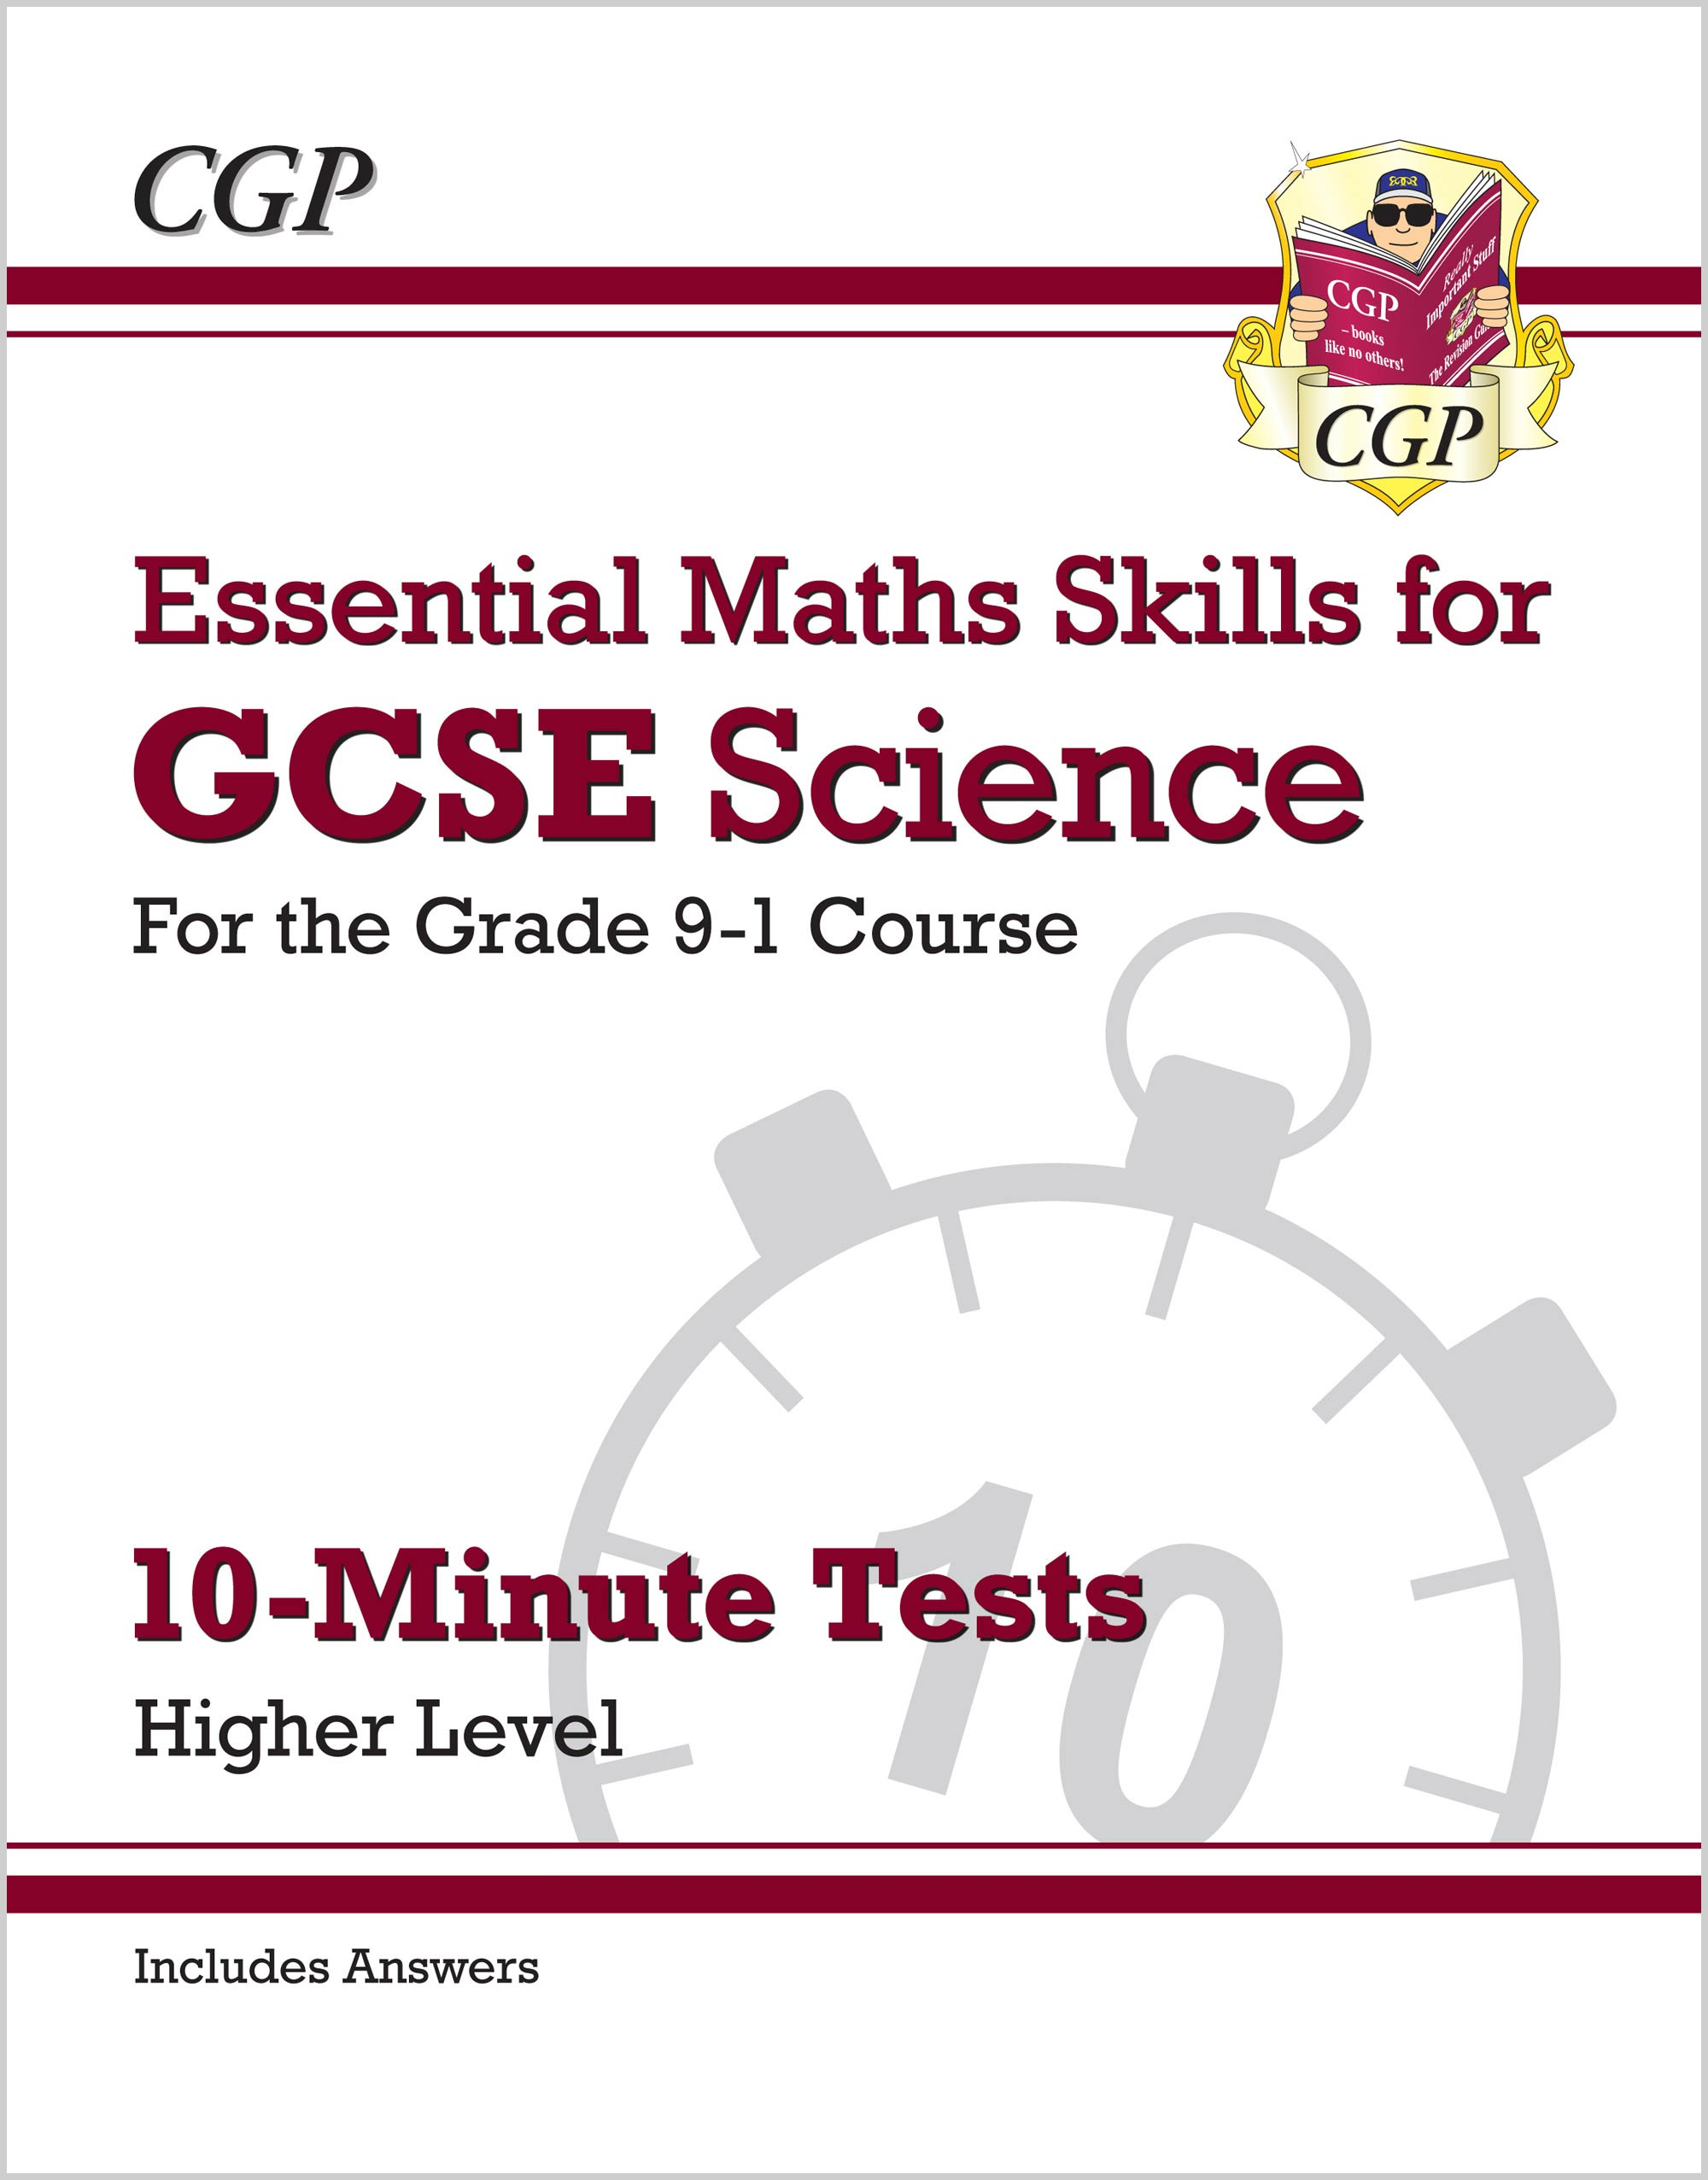 SMHXP41 - Grade 9-1 GCSE Science: Essential Maths Skills 10-Minute Tests (with answers) - Higher